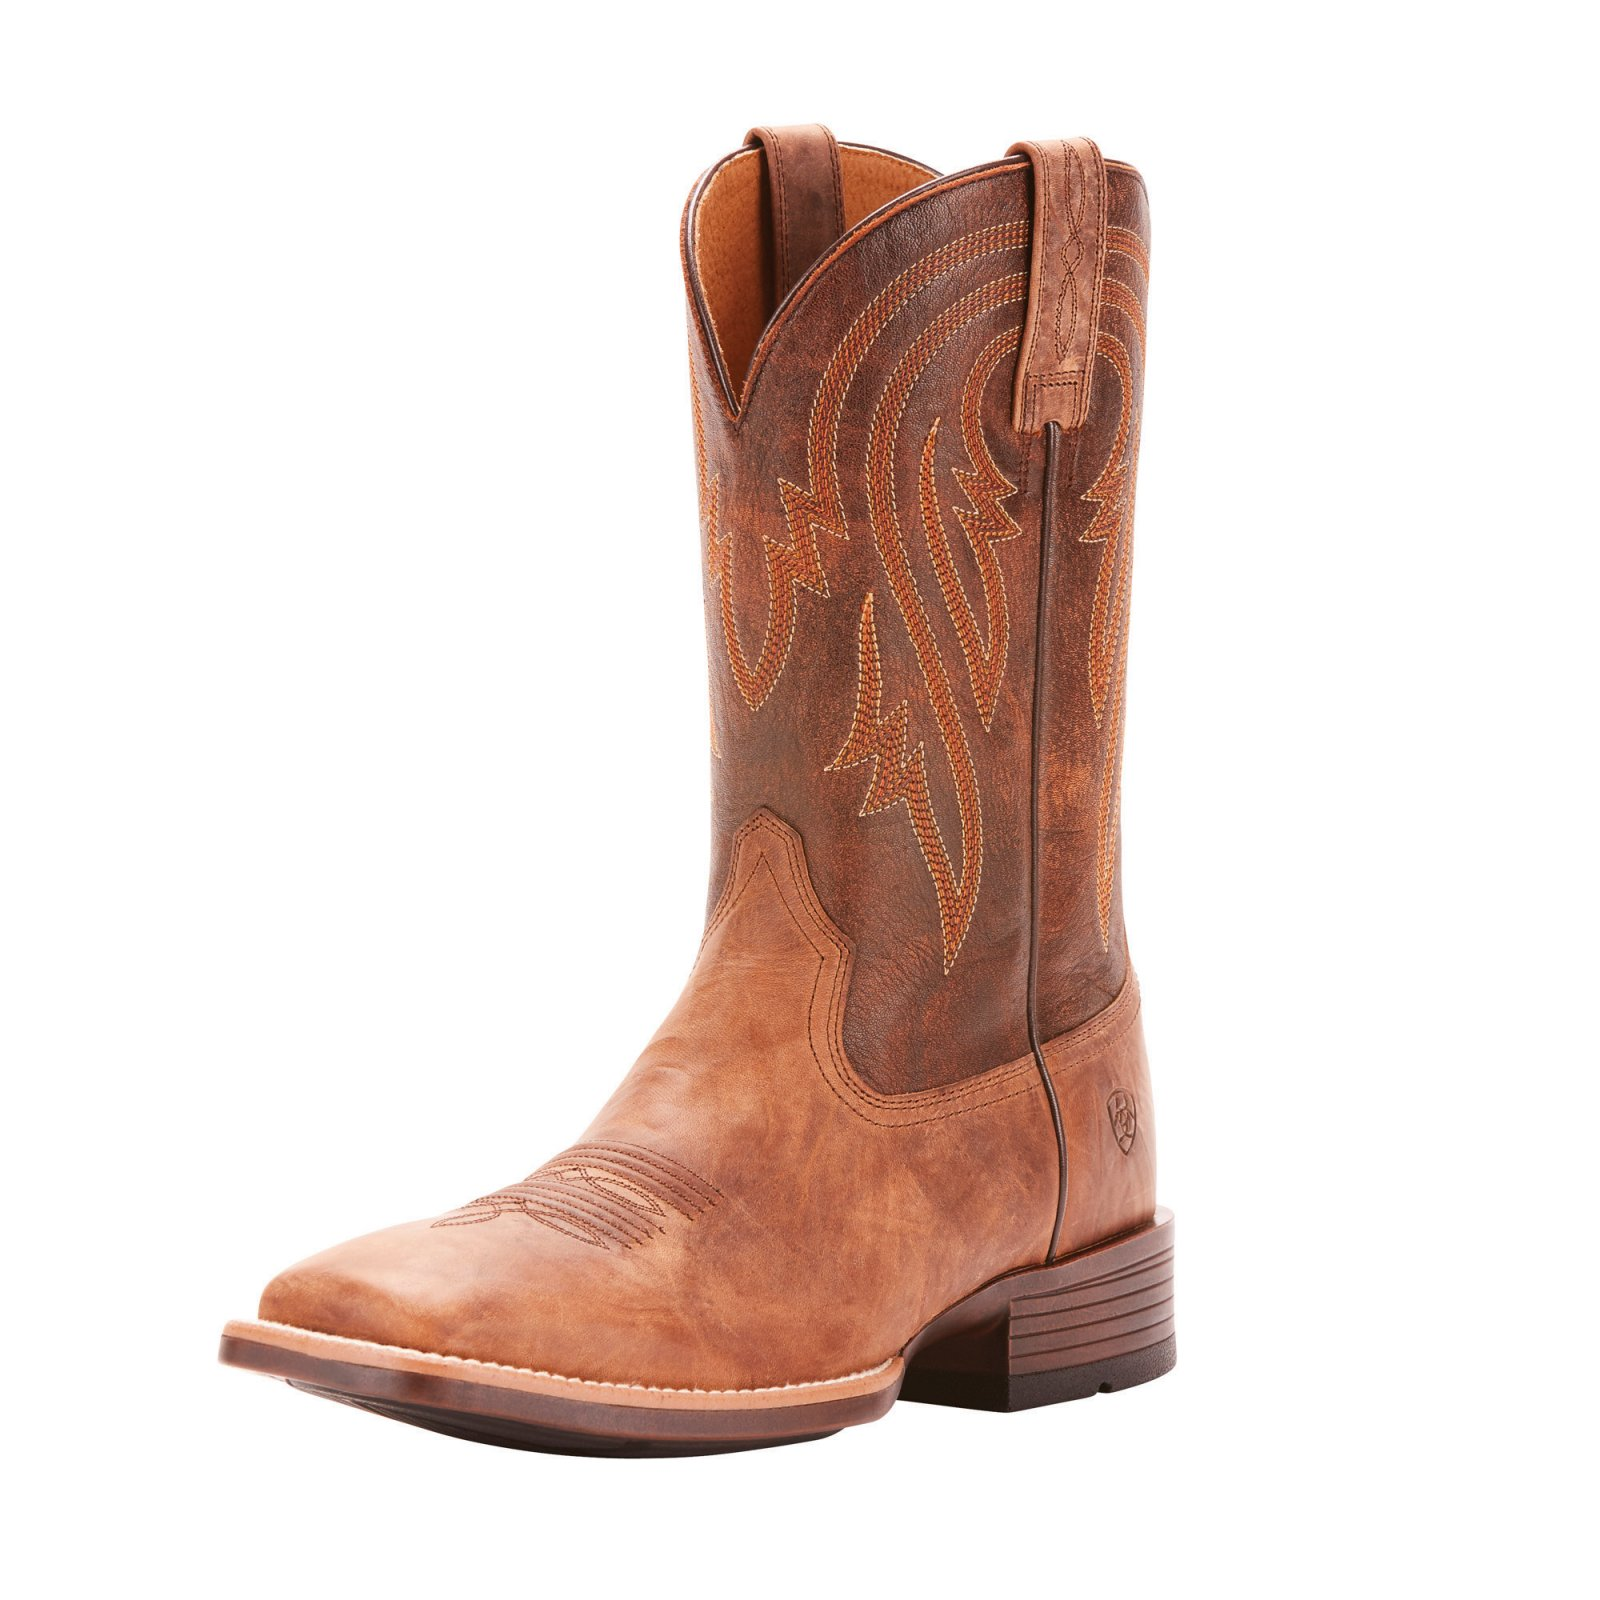 Plano from Ariat